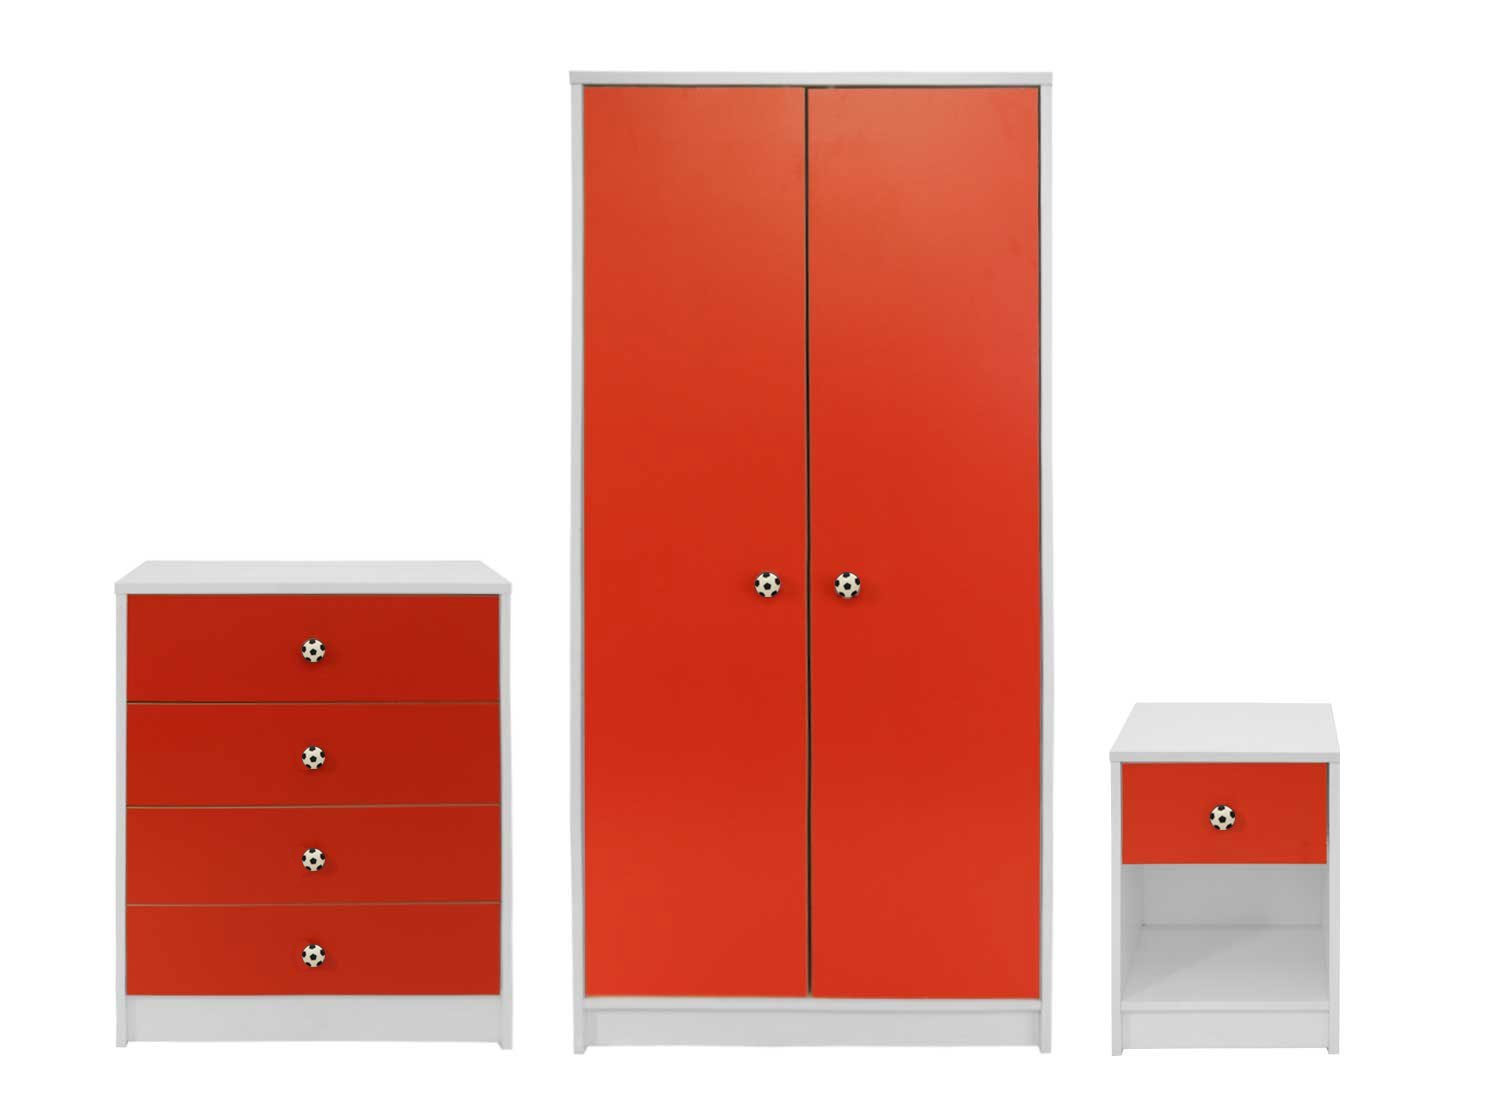 Devoted2Home Rovers Children's Bedroom Furniture Set with Wardrobe/Chest of Drawers/Bedside Cabinet, Wood, Red/White, 49.8 x 66.8 x 139 cm, 3-Piece AA720902ROV